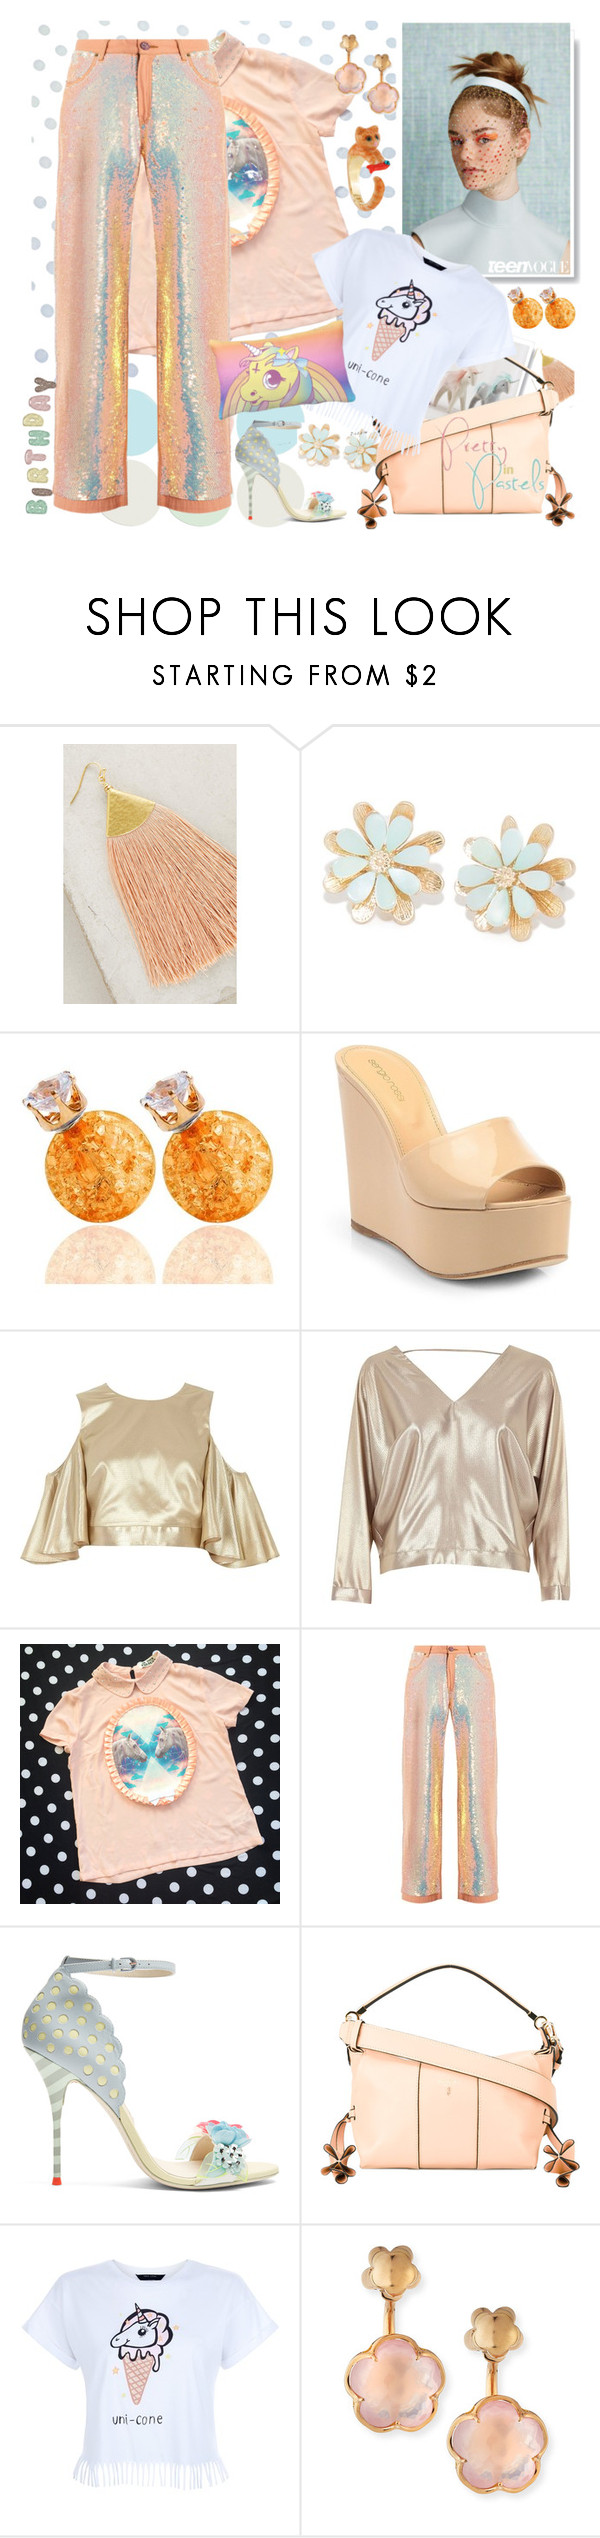 """Dress to Impress: Unicorn Birthday Date"" by yours-styling-best-friend ❤ liked on Polyvore featuring NAKAMOL, Sergio Rossi, River Island, Ashish, Sophia Webster, Serapian, New Look, Pasquale Bruni and Kate Spade"